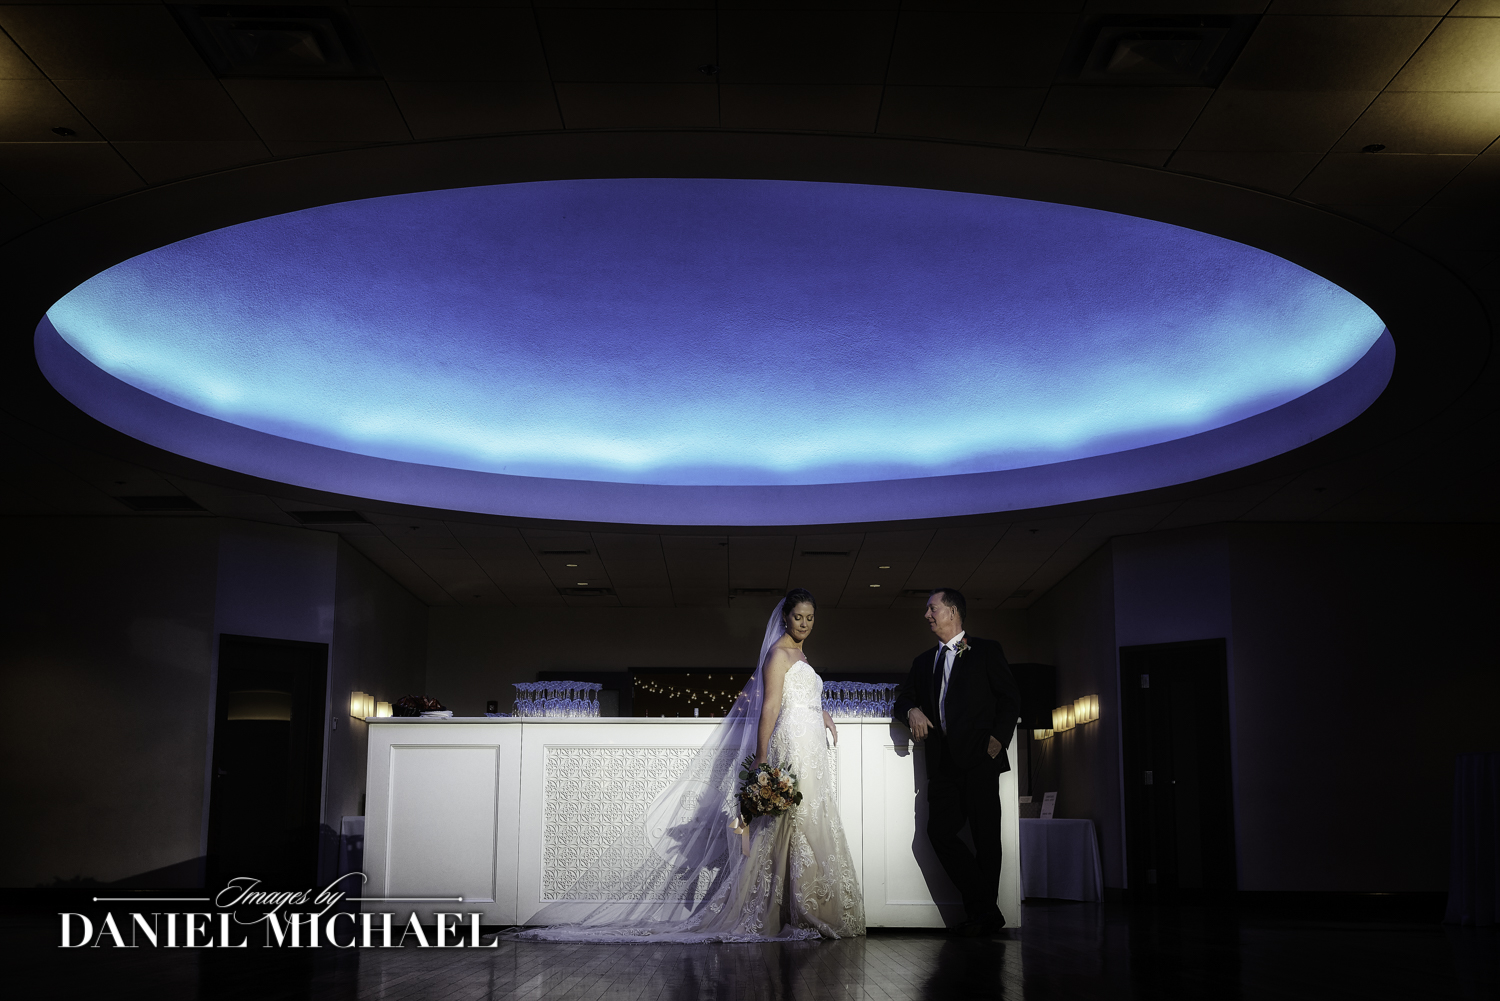 Wedding Photography at The Center